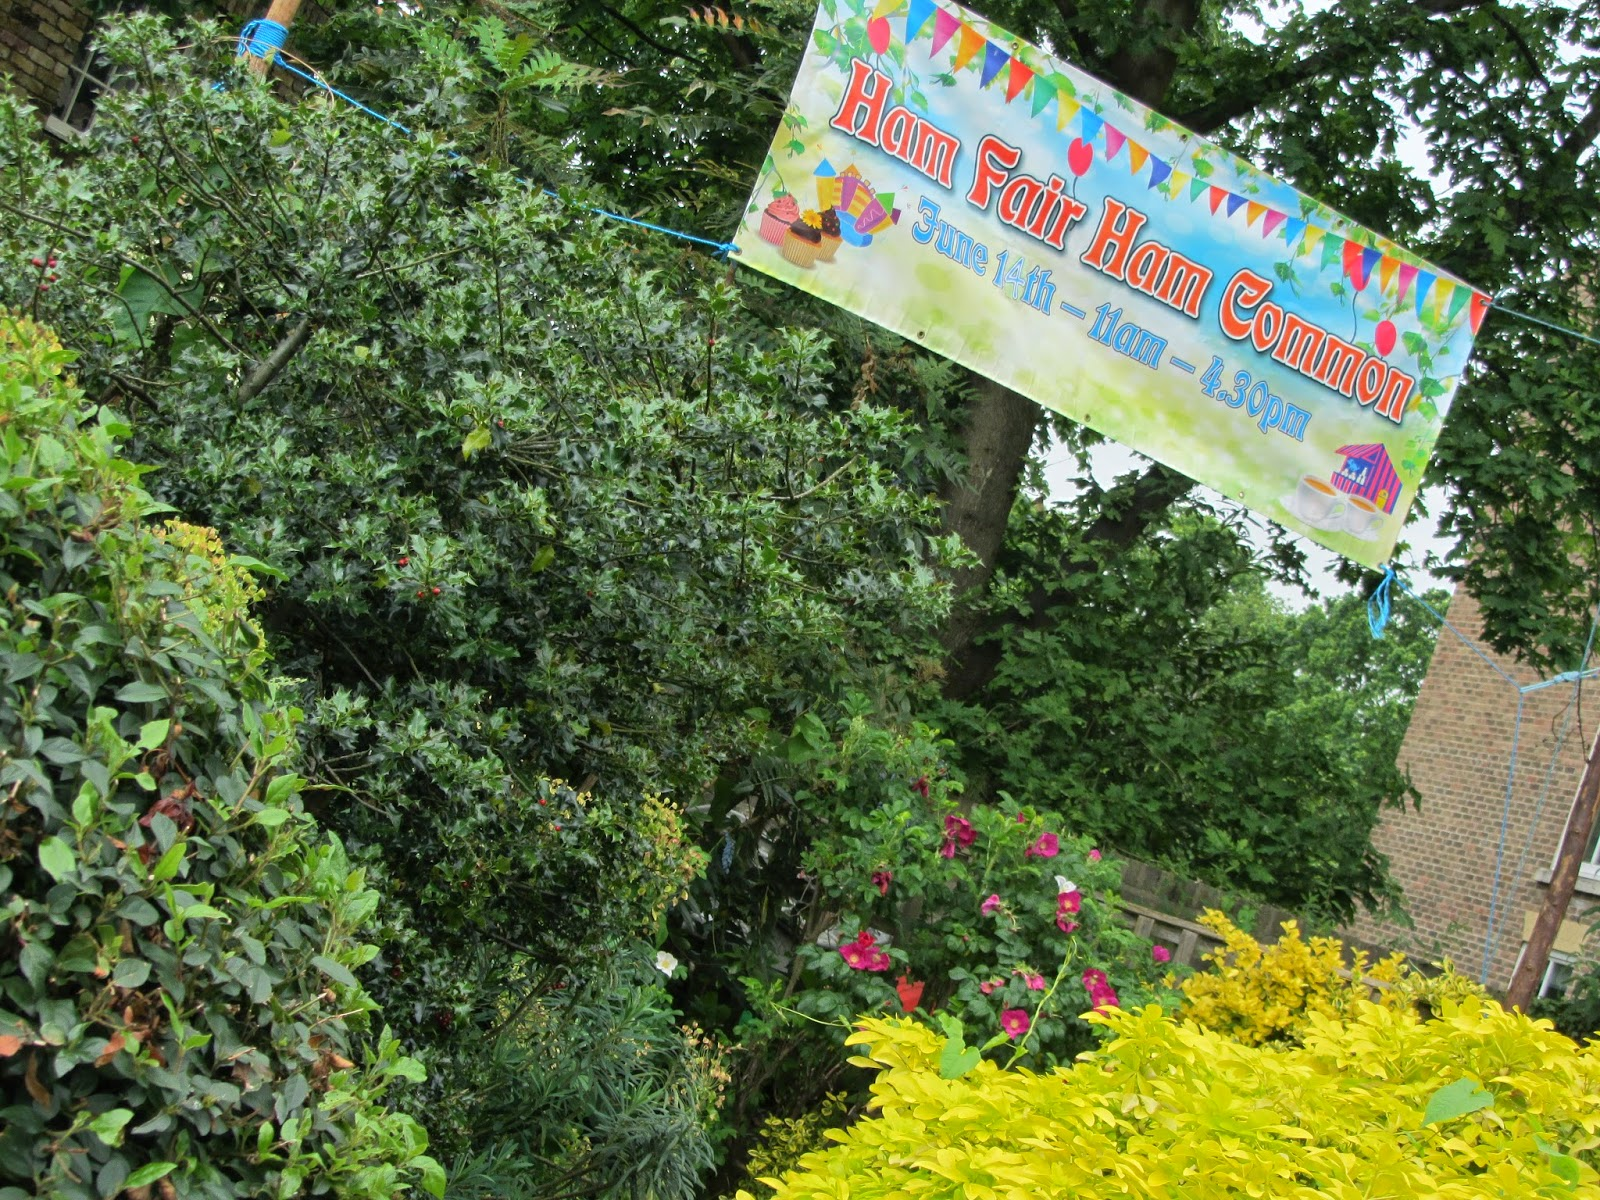 Ham photos rear garden at ormeley lodge - This Publicity Is Rolling Out For This Year S Ham Fair And The Most Prominent Piece Is The Banner Above The Gate House Garden On The South East Corner Of